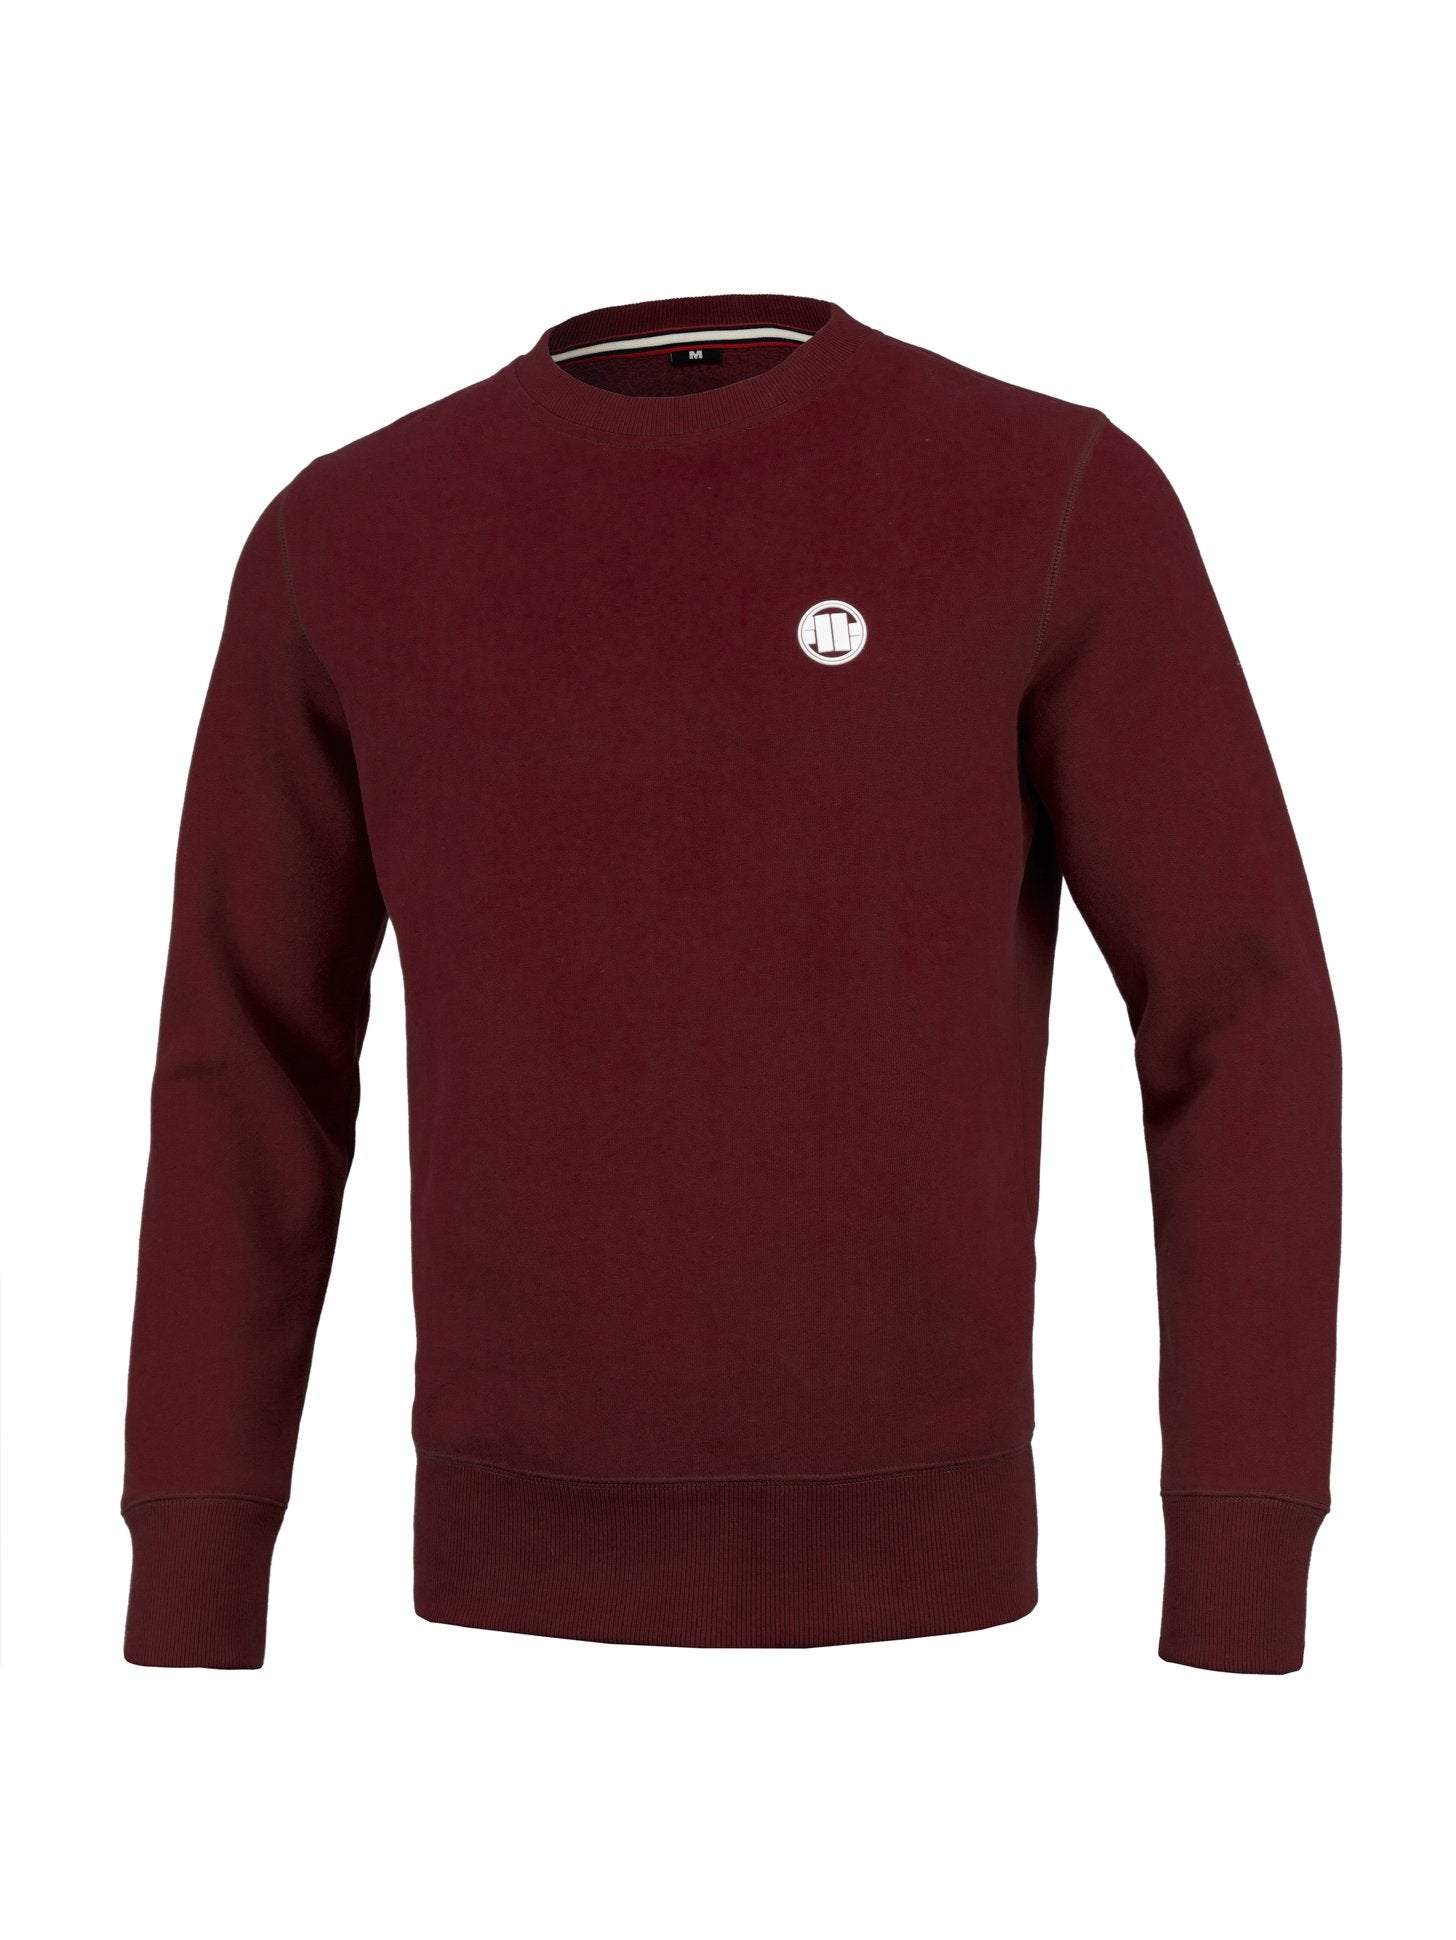 Crewneck Small Logo Burgundy